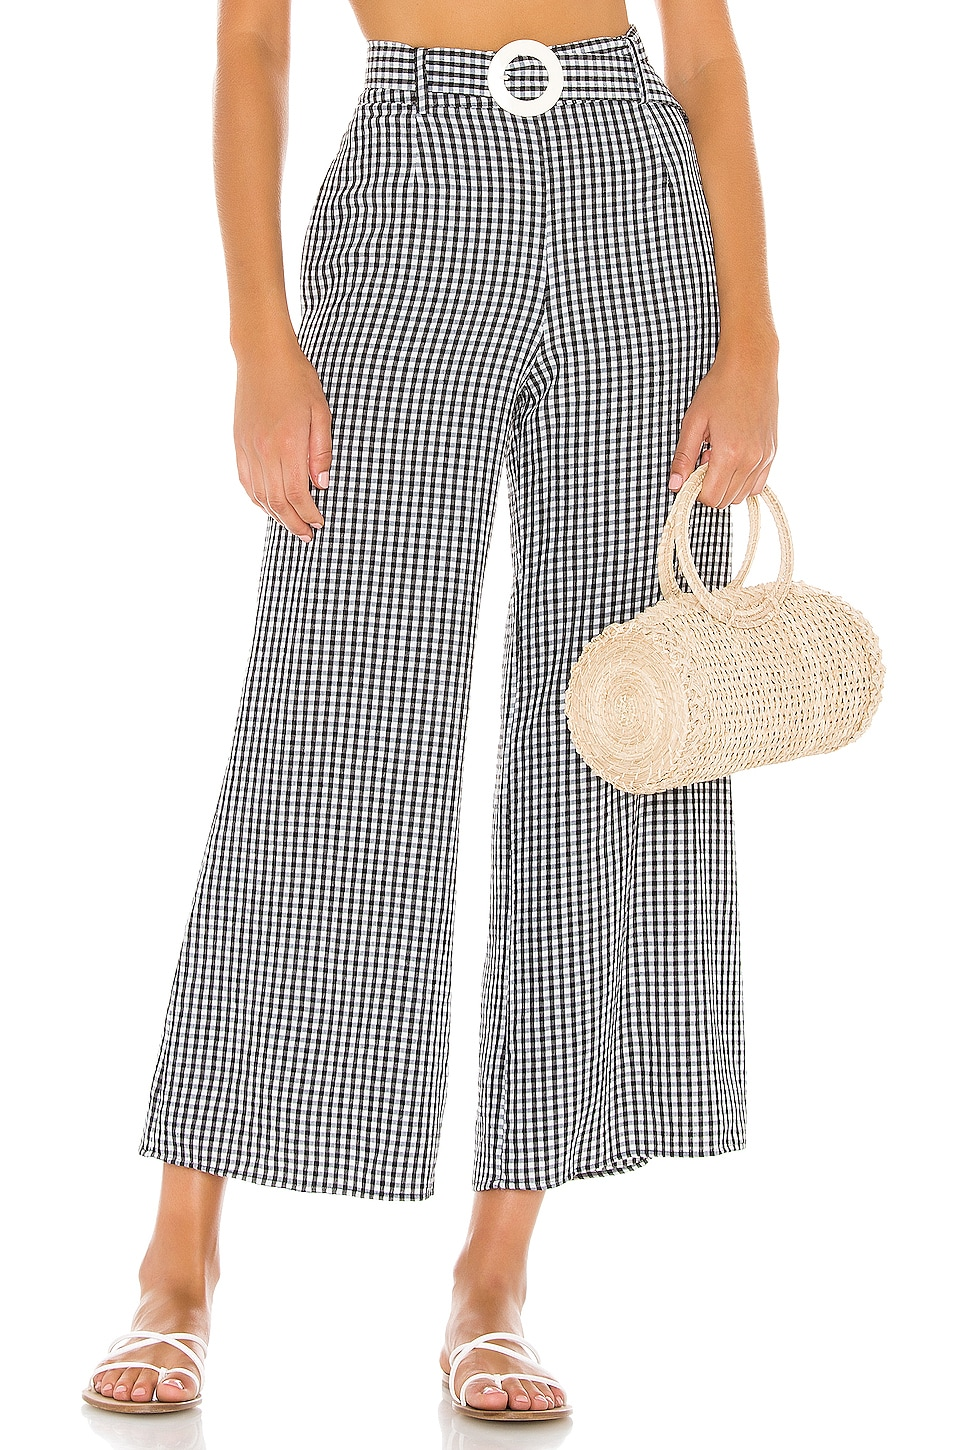 Solid & Striped Palazzo Pant in Black Gingham